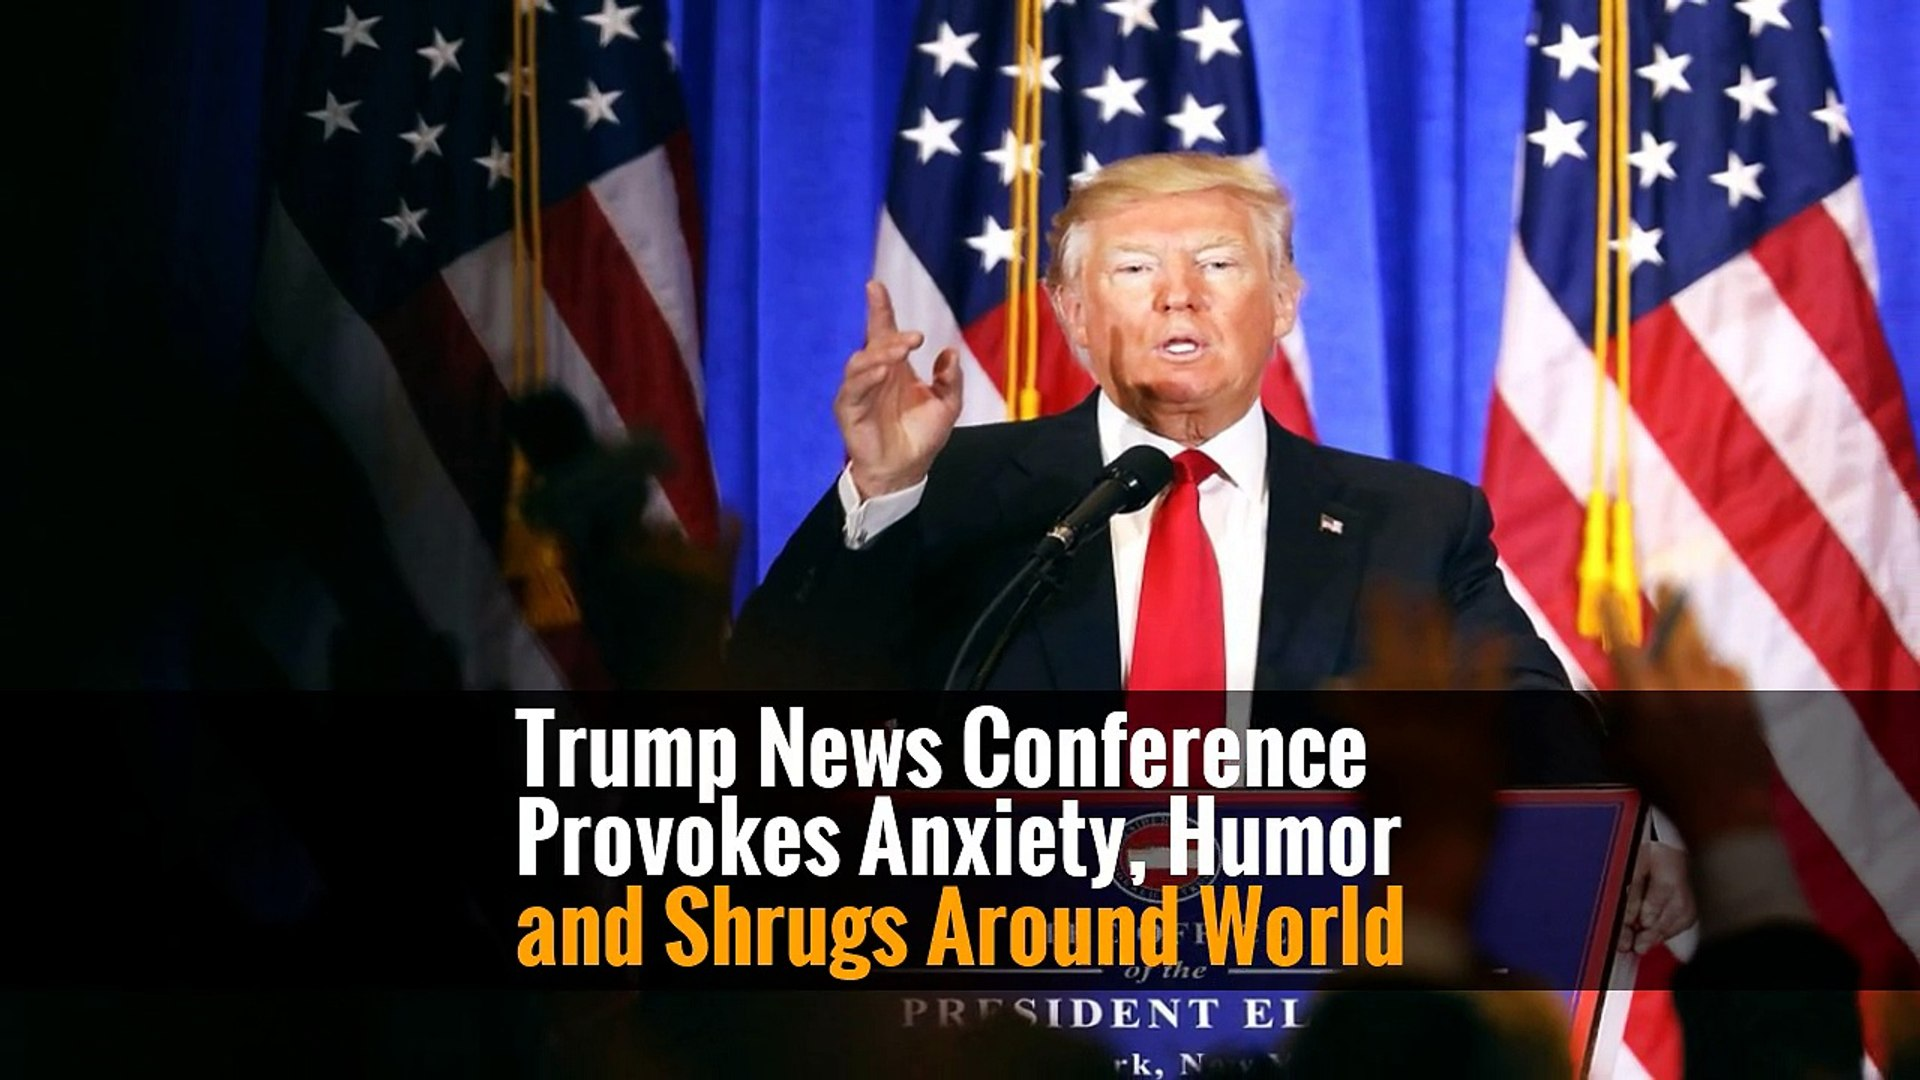 Trump News Conference Provokes Anxiety, Humor and Shrugs Around World